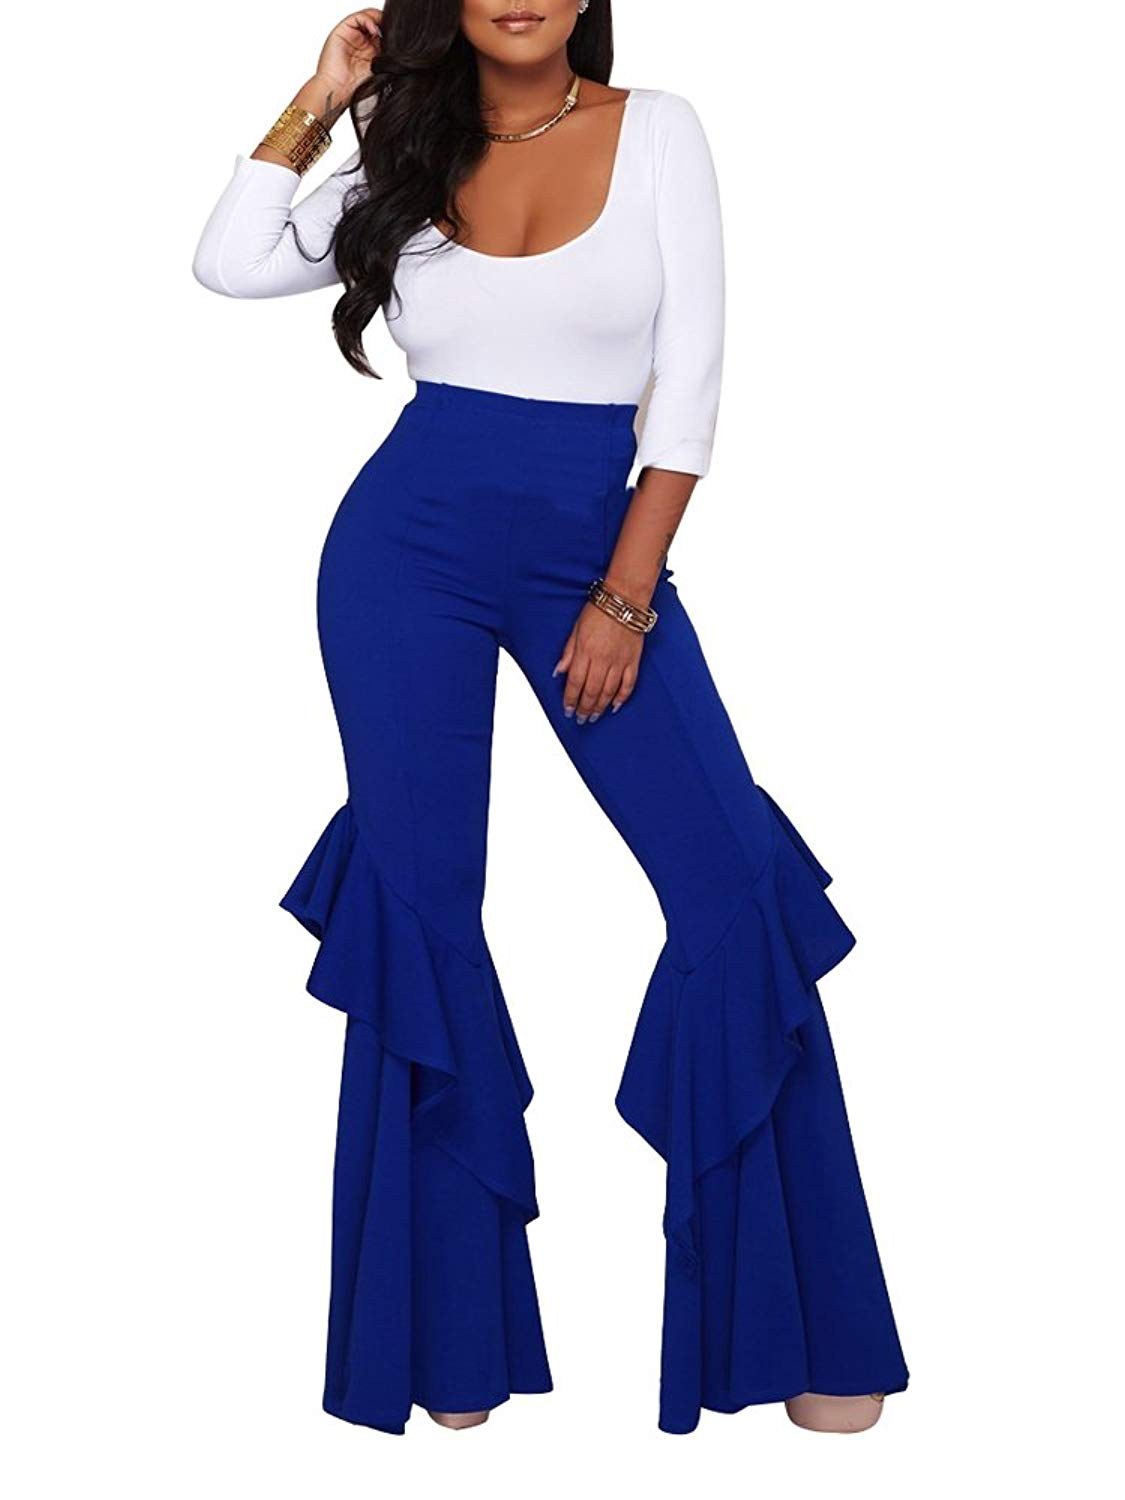 e1f7d25bb42 Get Quotations · FairBeauty Women s Sexy Sleeveless V Neck Ruffle Long  Flared Bell Bottom Pants with Belt Jumpsuits Rompers